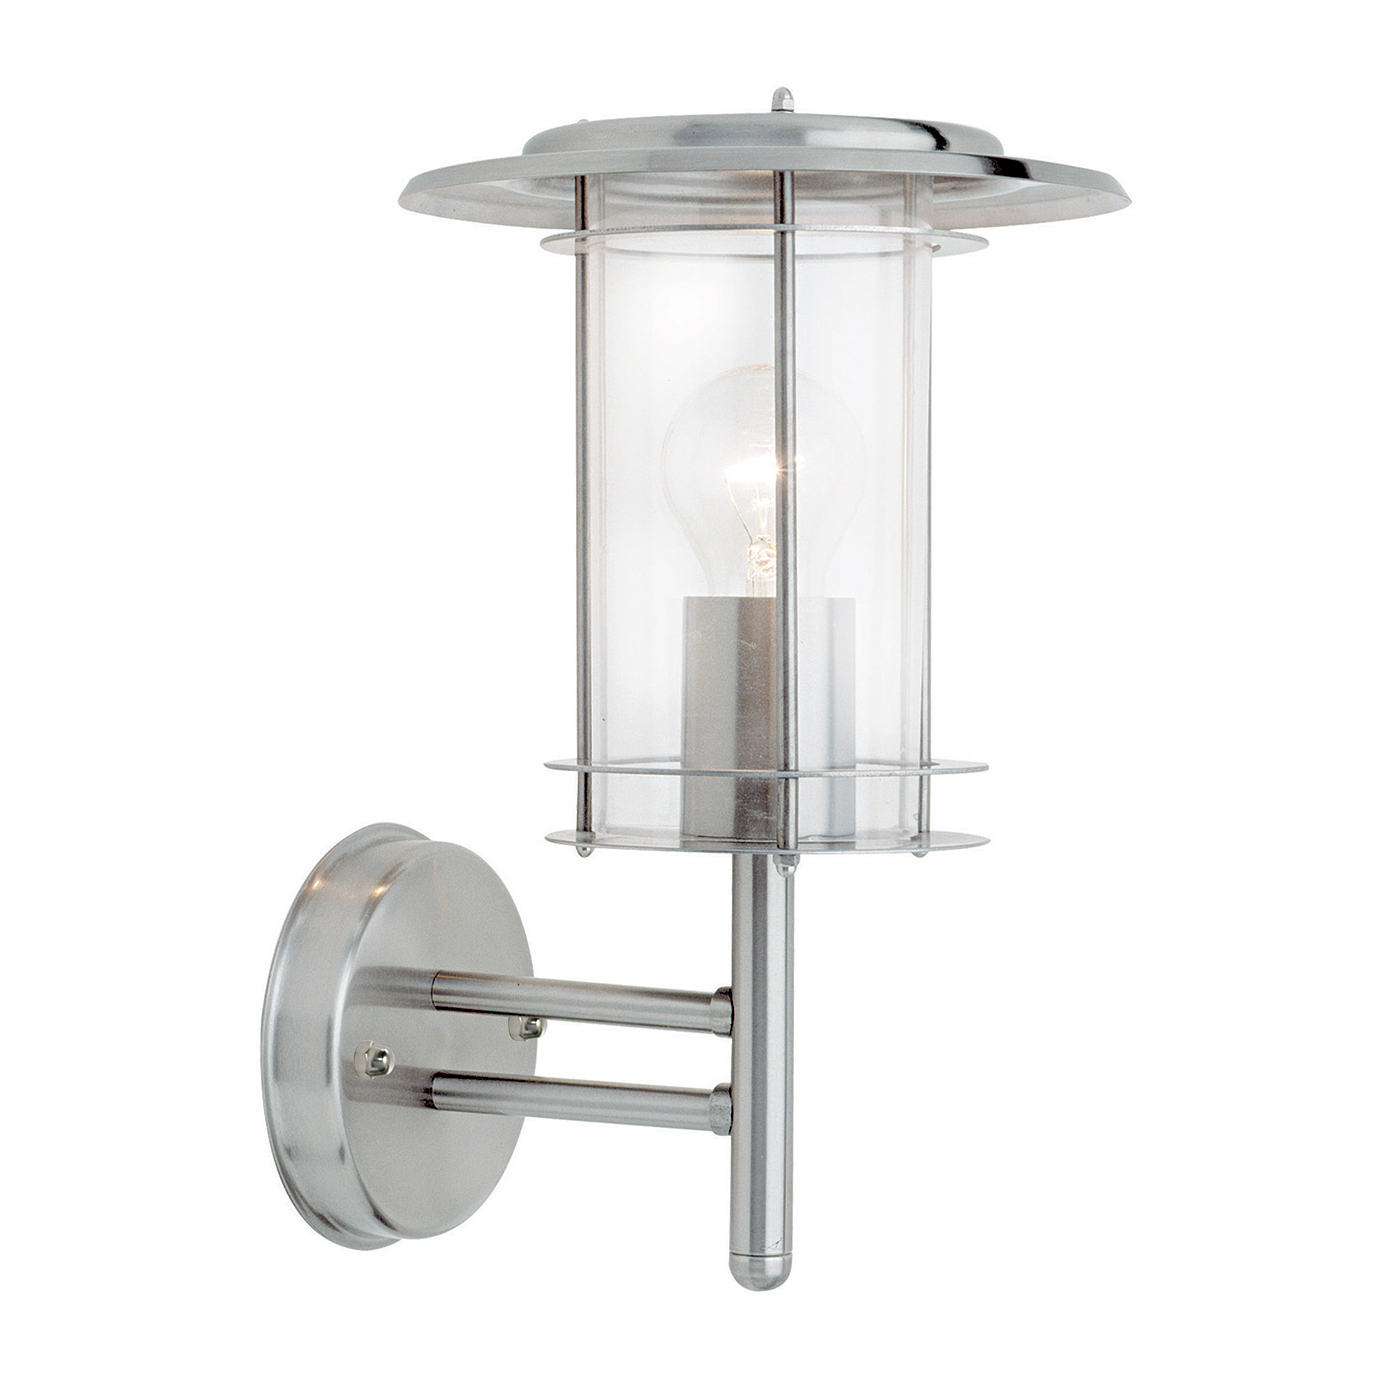 Wall Lights York: Endon York Outdoor Wall Light IP44 60W Polished Stainless